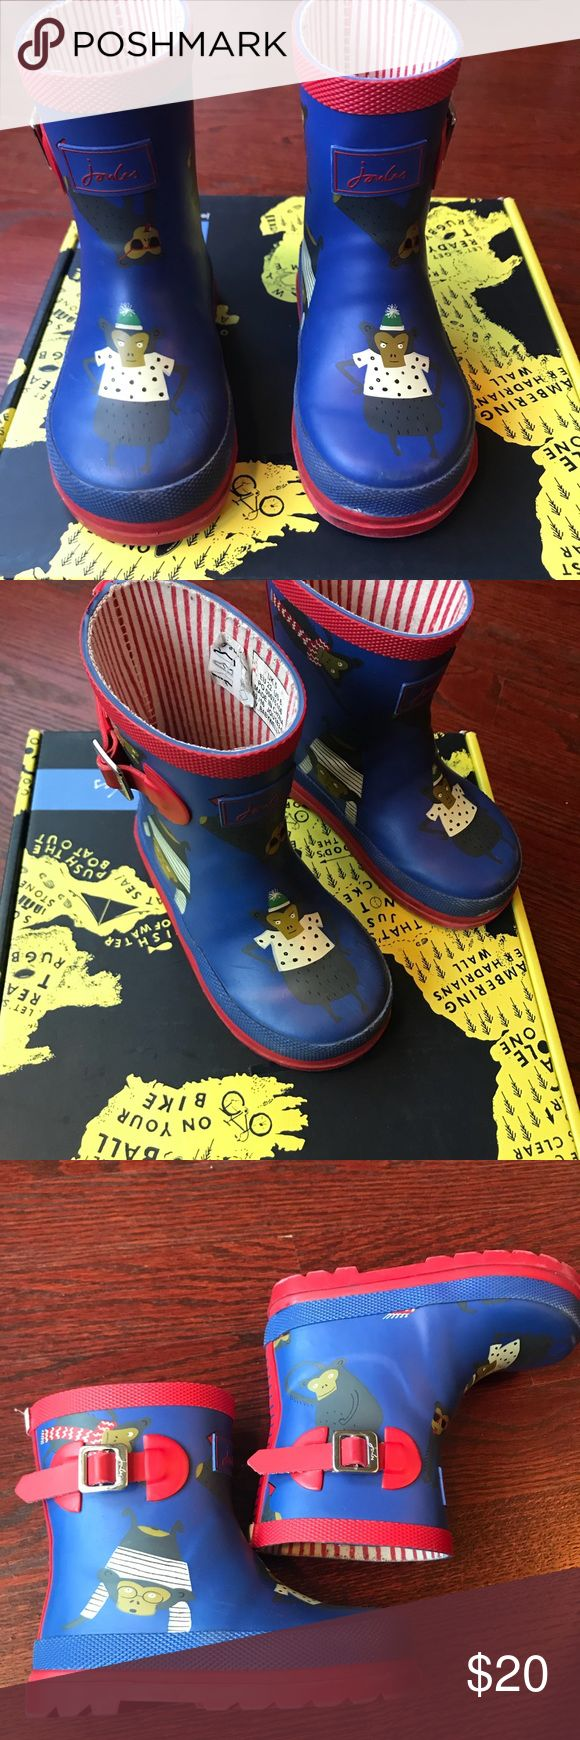 Joules kids adorable monkey rain boots US size 6 Joules Adorable rubber rain boots for kids-unisex Size 6 US w/box  Pre-owned but great condition  Perfect for puddles and bad weather Joules Shoes Rain & Snow Boots